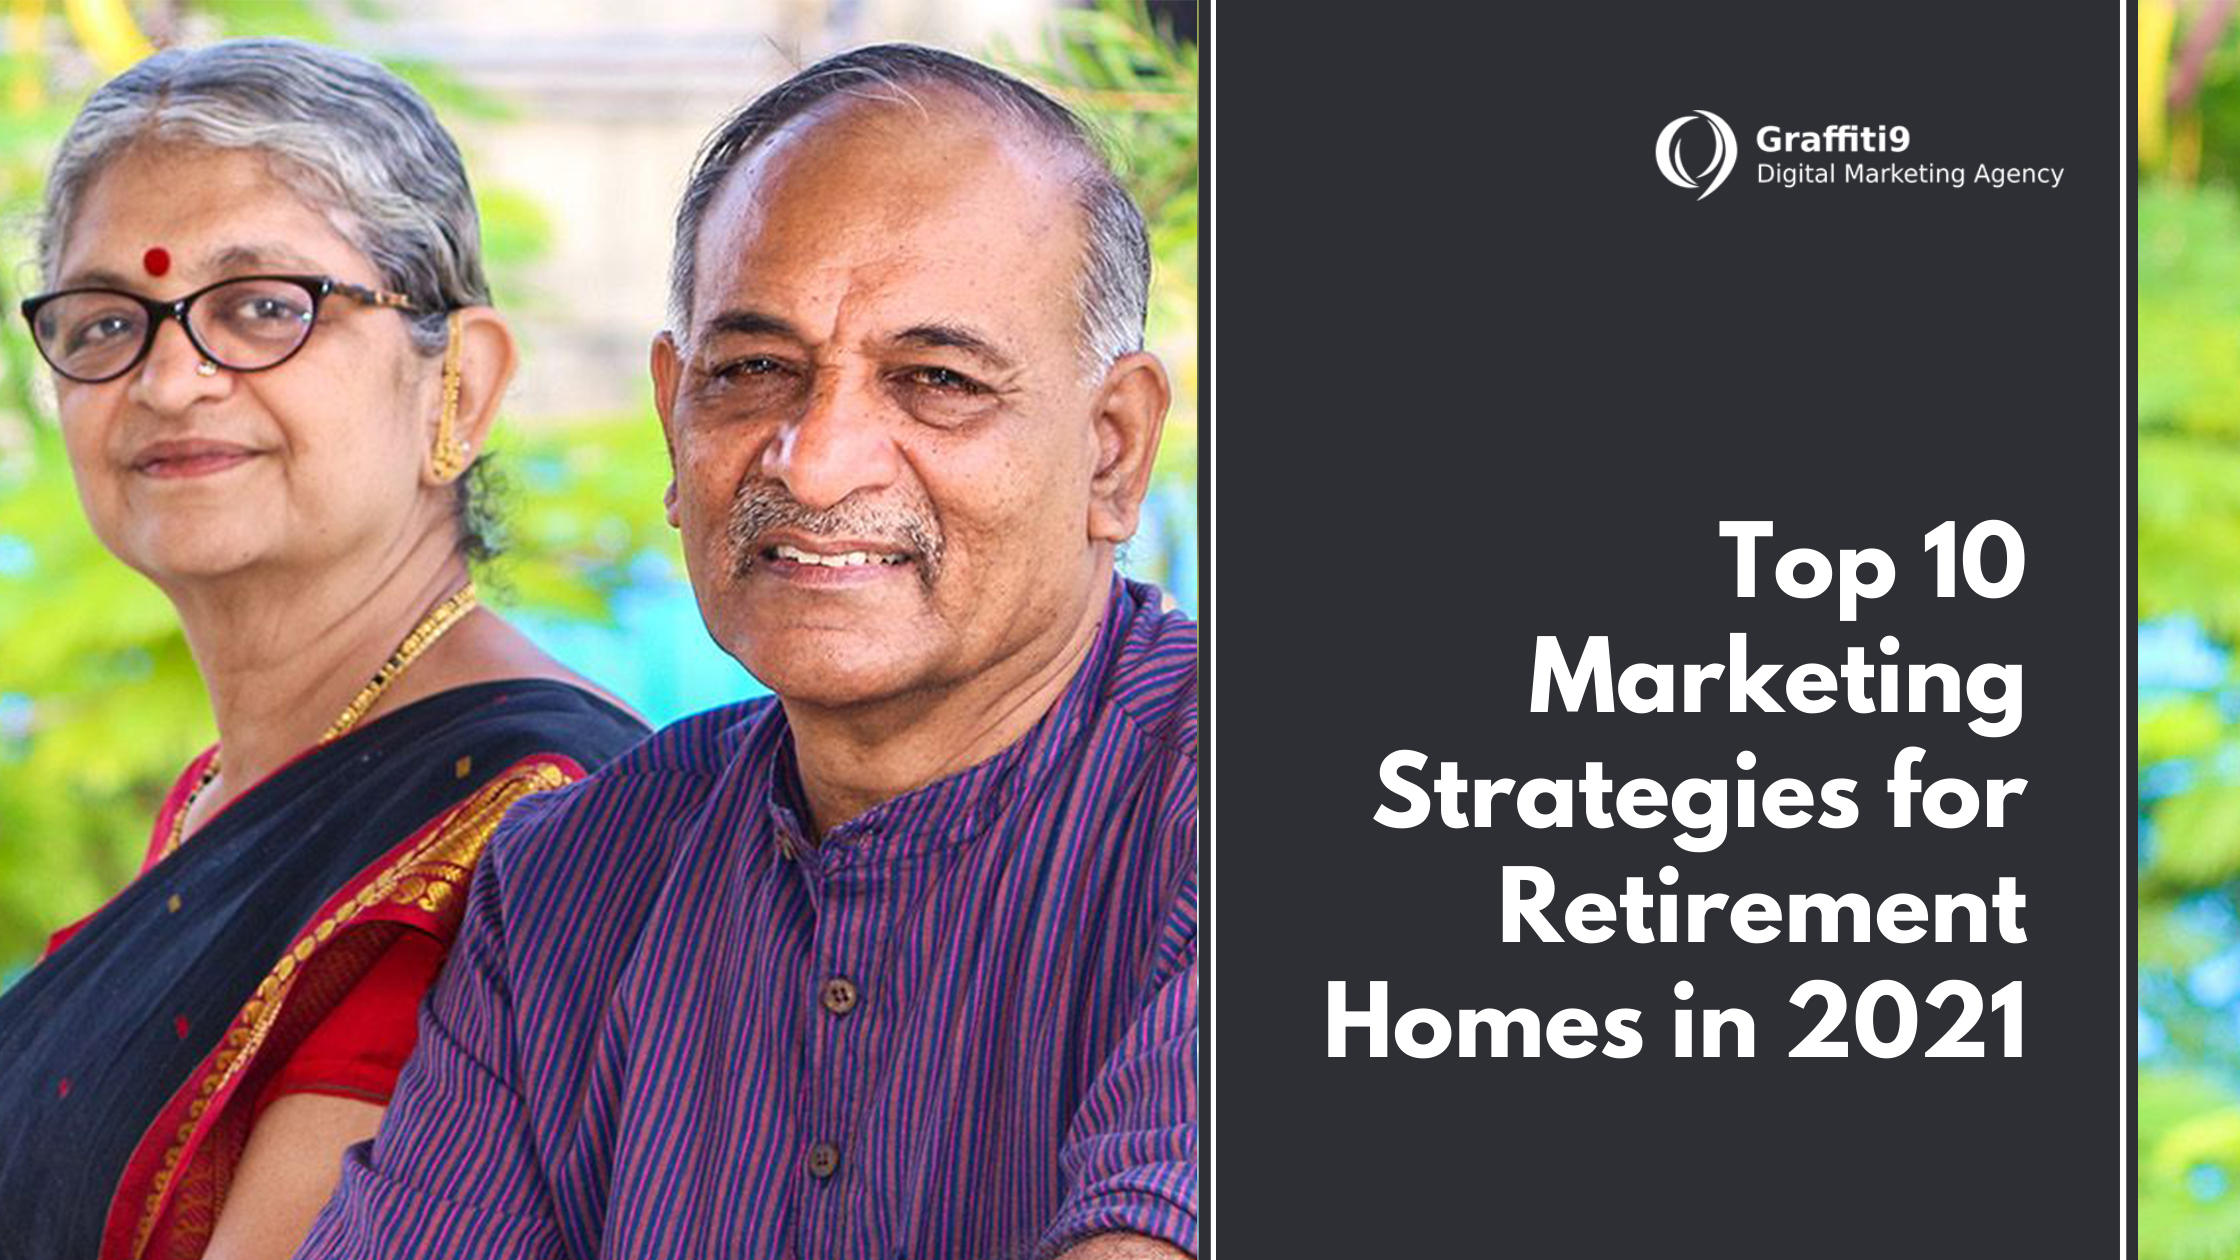 Proven marketing strategies for retirement homes